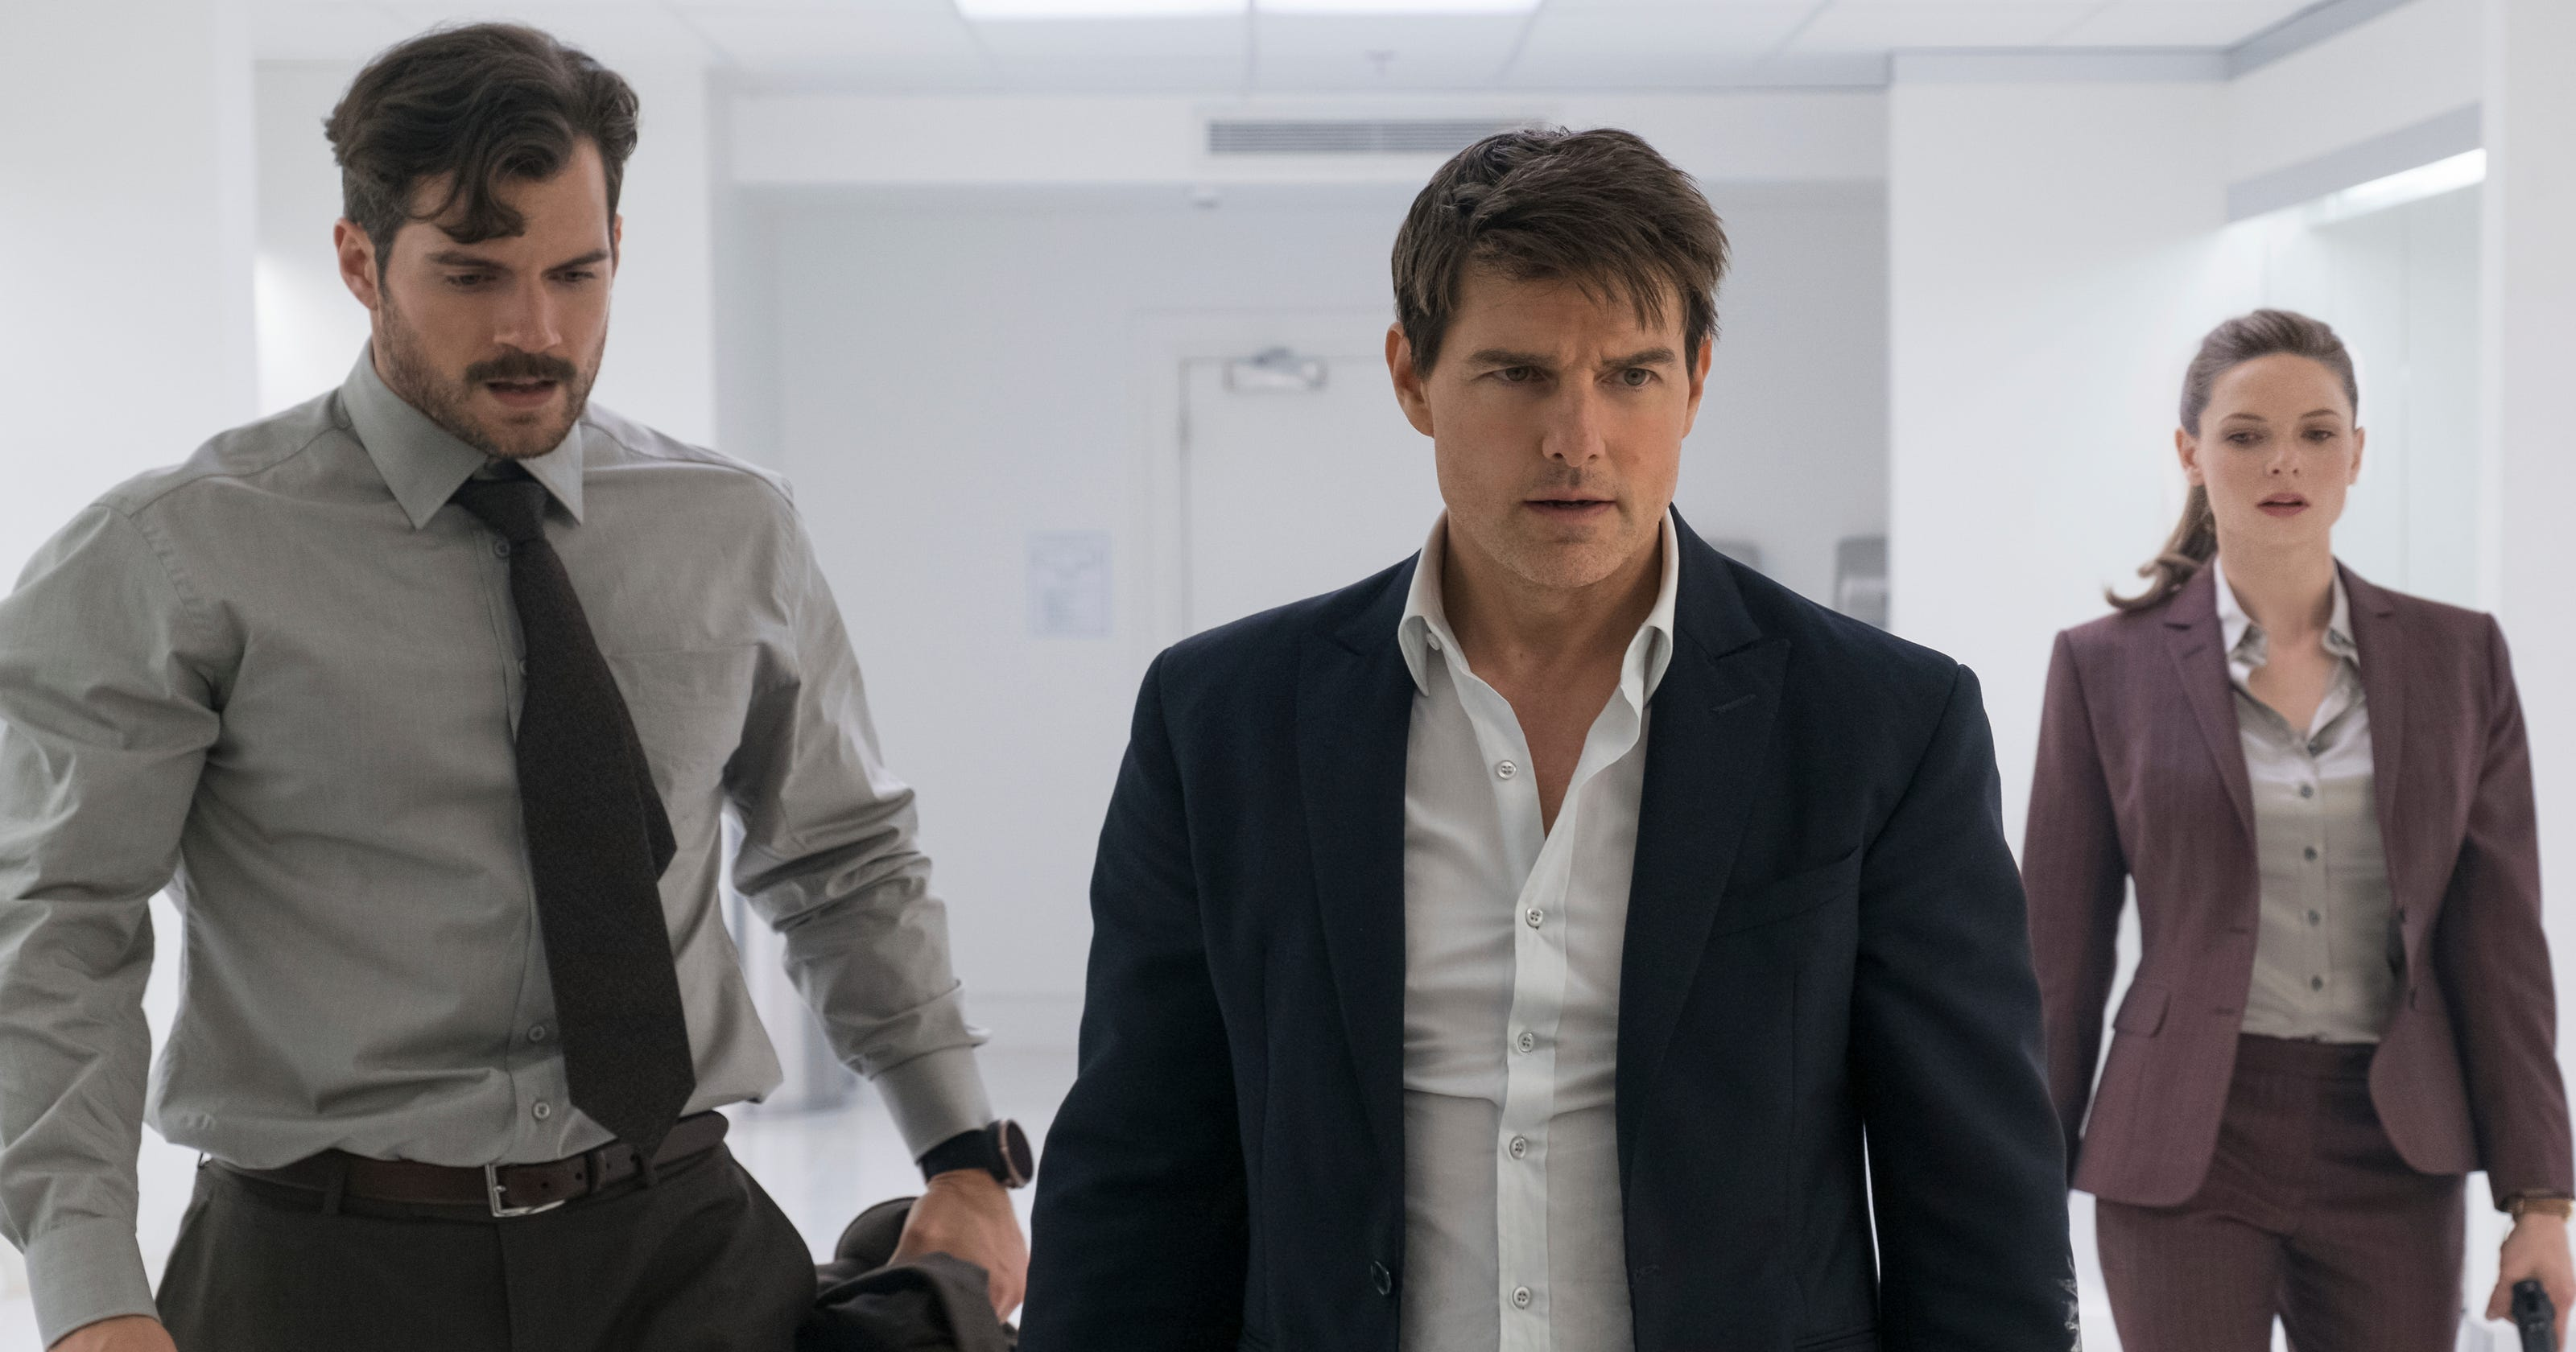 Tom Cruise gives TV tuning tips for 'Mission: Impossible